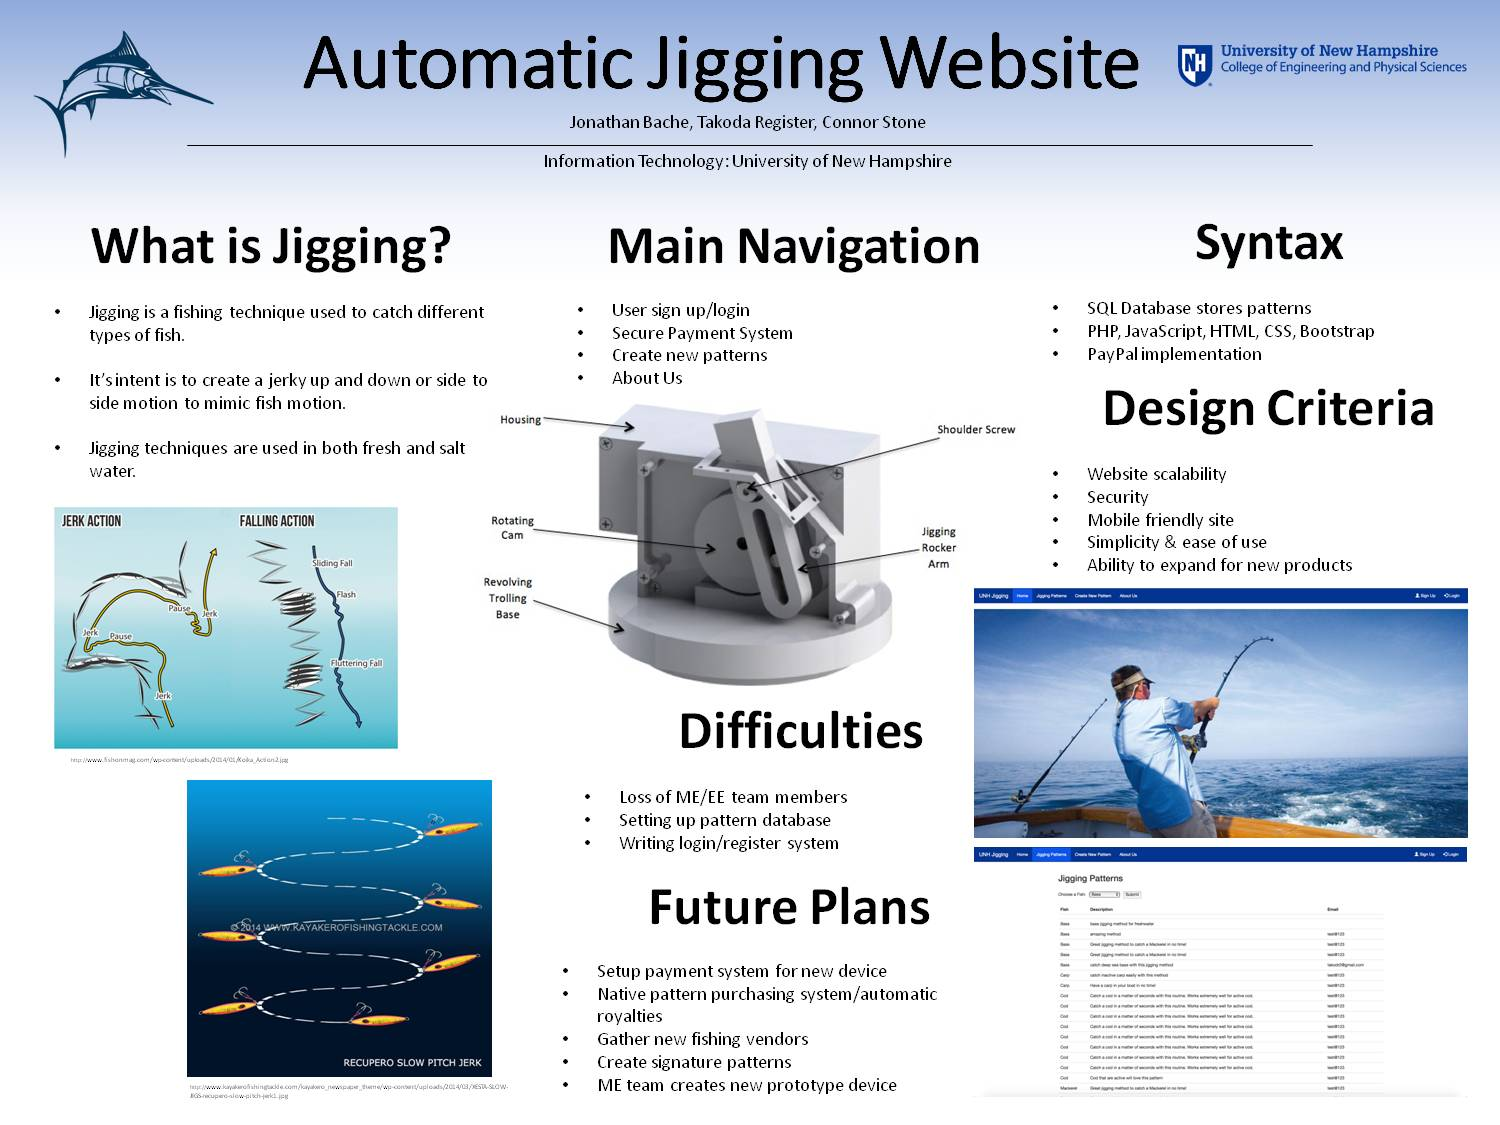 Unh Jigging Website by cjt89